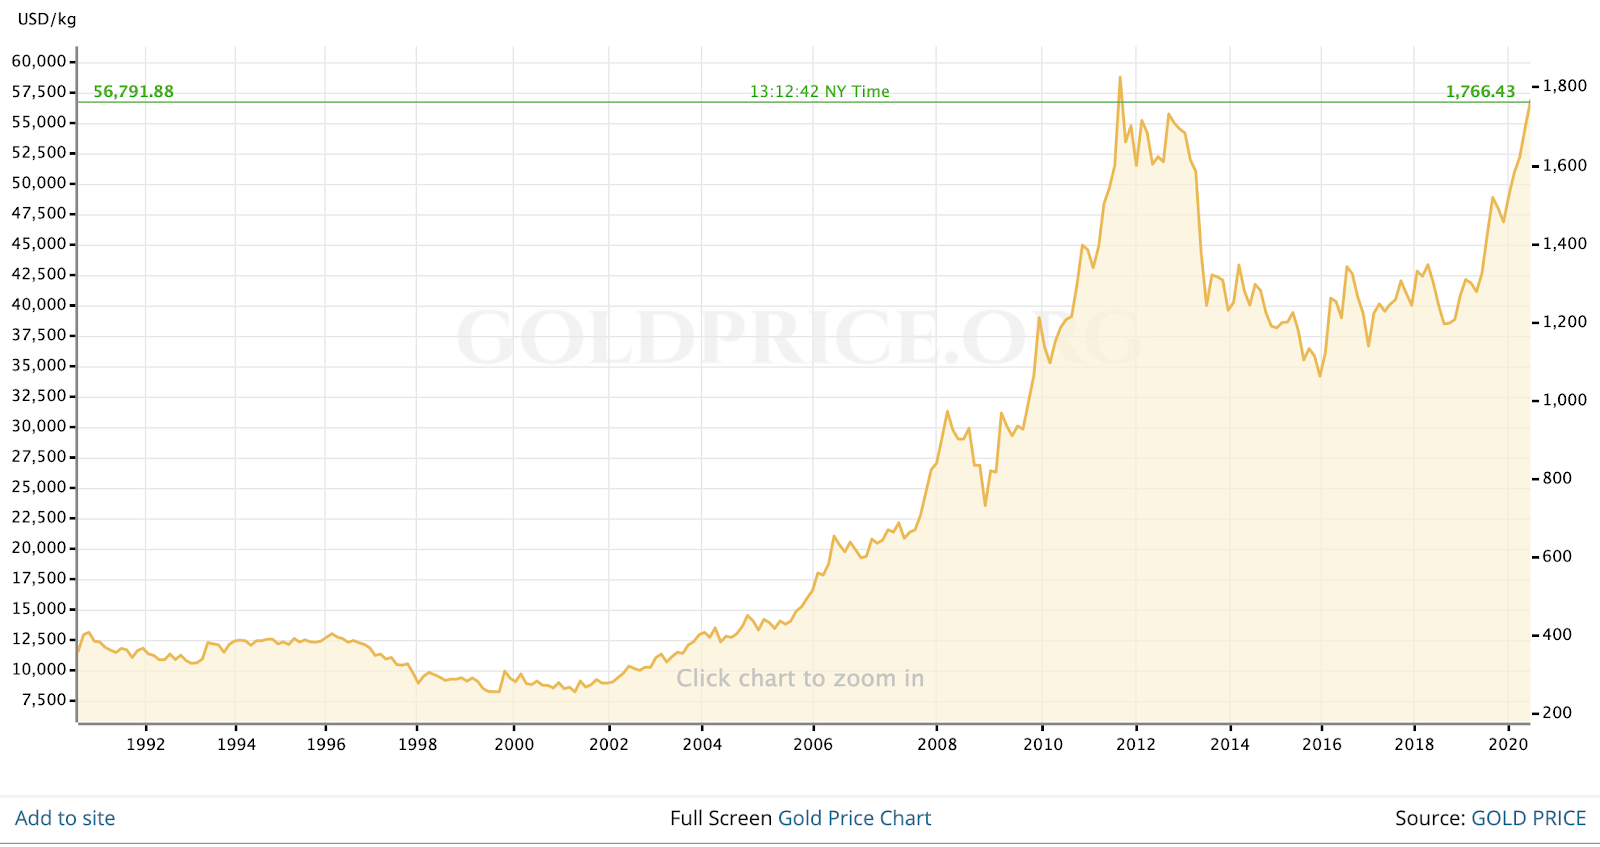 Gold Price Chart, from 1992 to 2020, showing a rise of nearly 1800%, source: goldprice.org